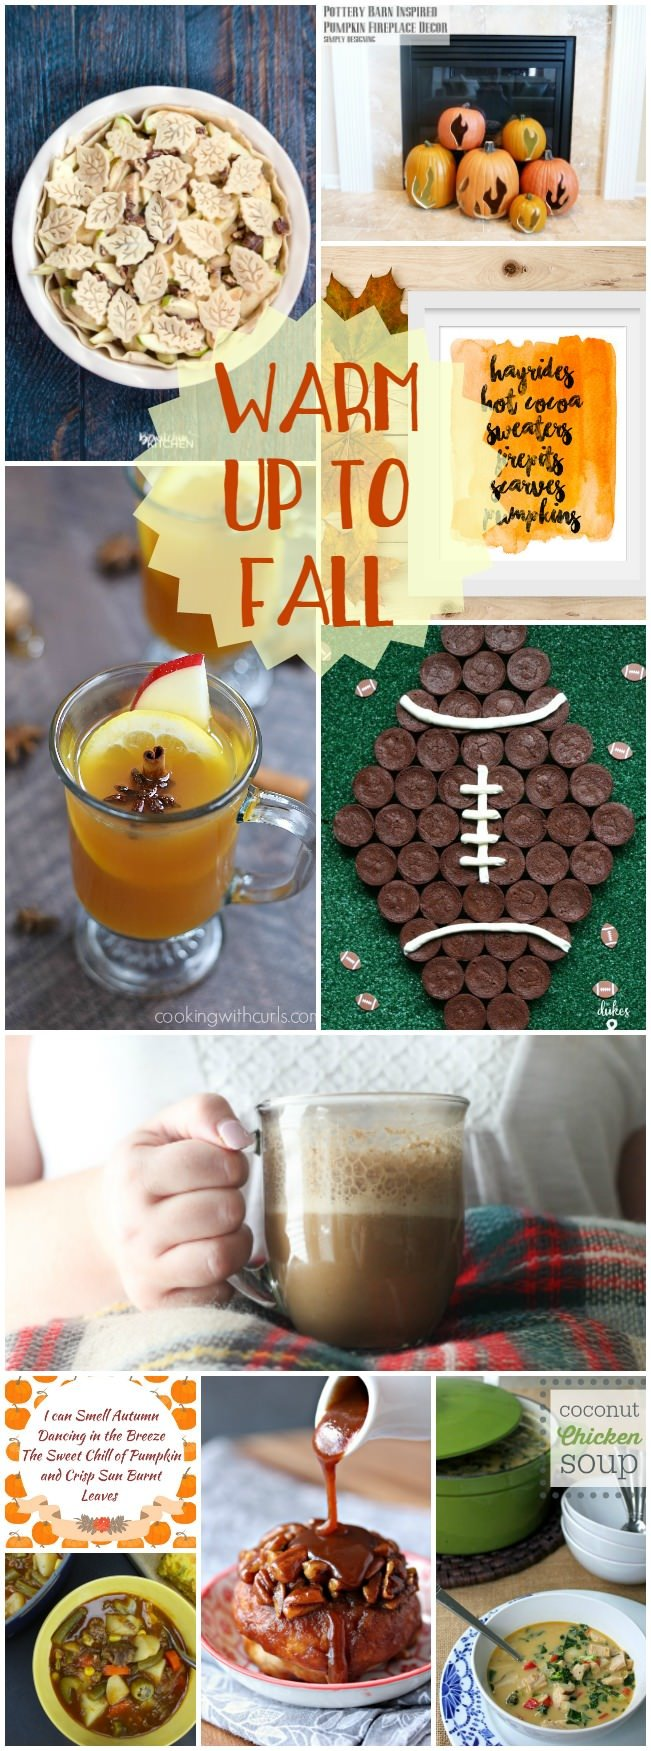 Warm up to Fall with this fun collection of food, drinks and crafts.